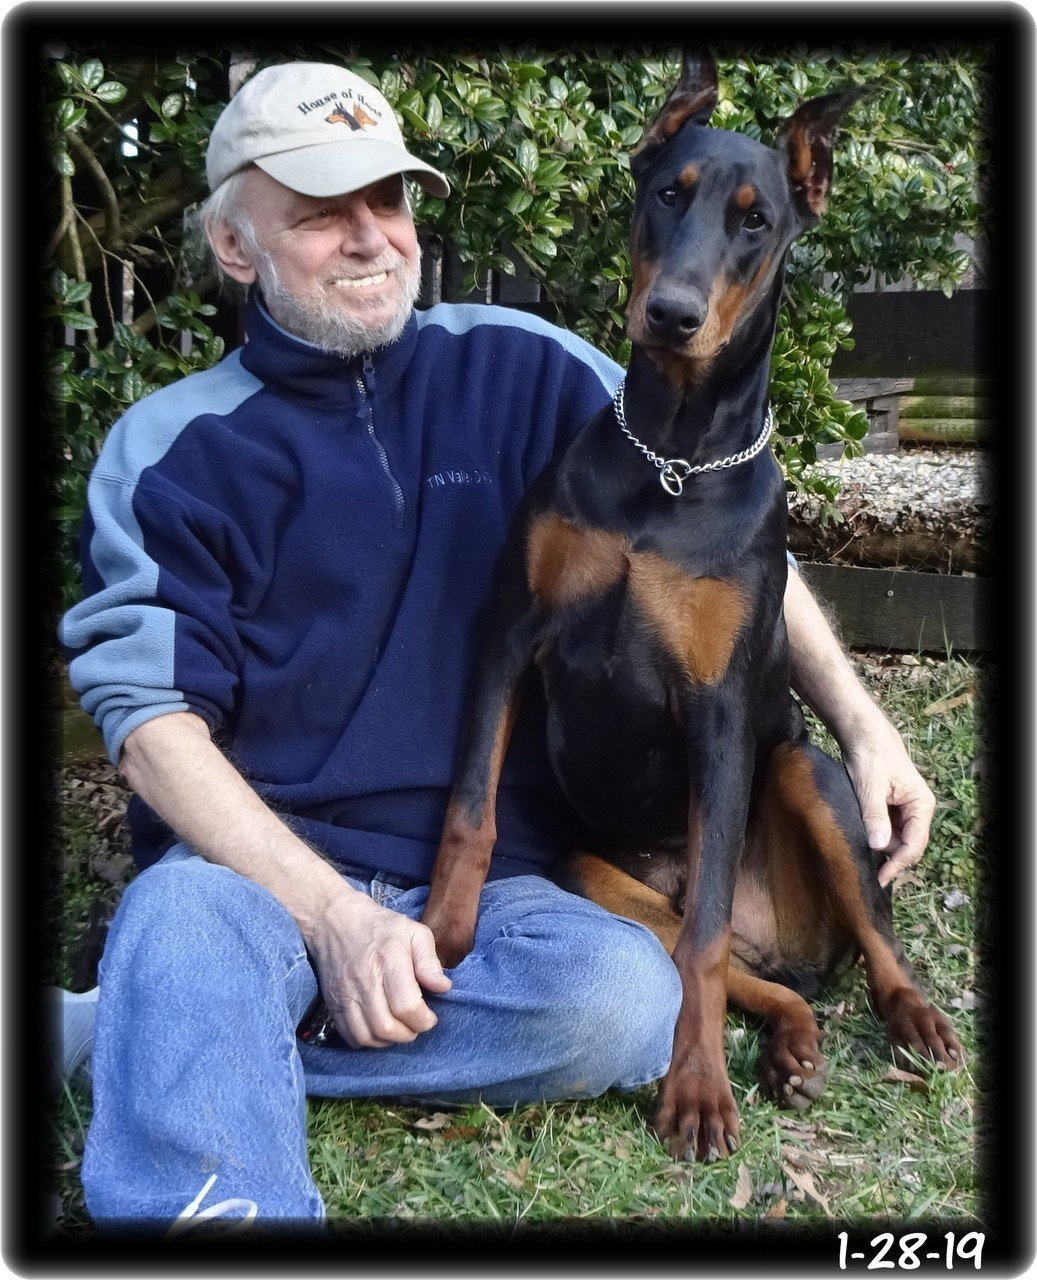 Dawson - Special mention - born 6-29-18 ... Finished his education towards therapy work - now in Boston with his veterinary family